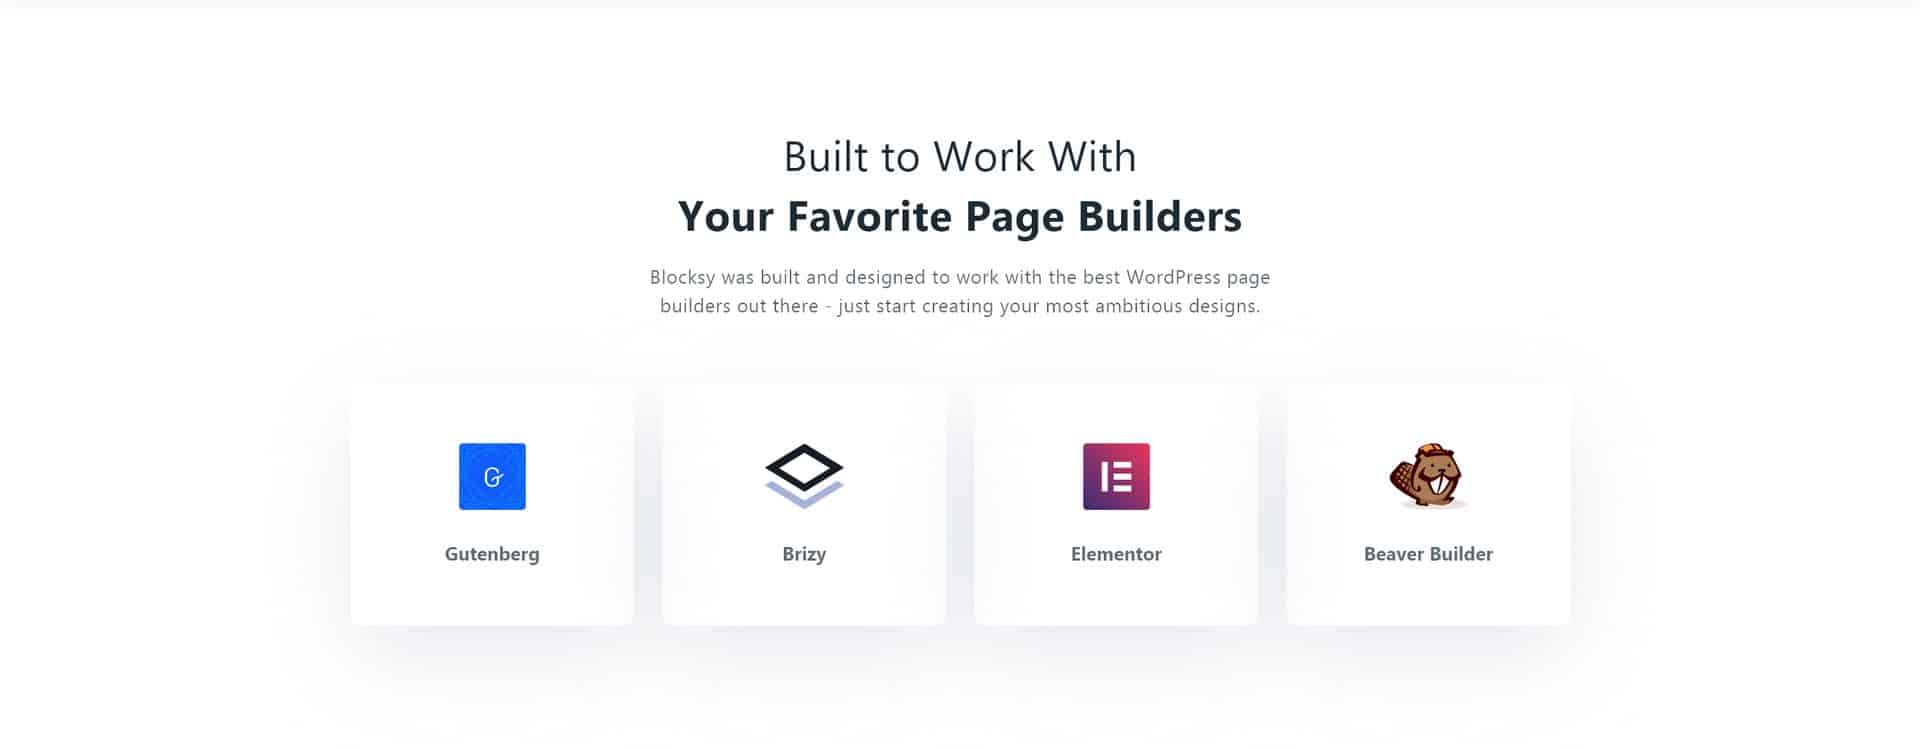 Blocksy - Built to Work With Your Favorite Page Builders